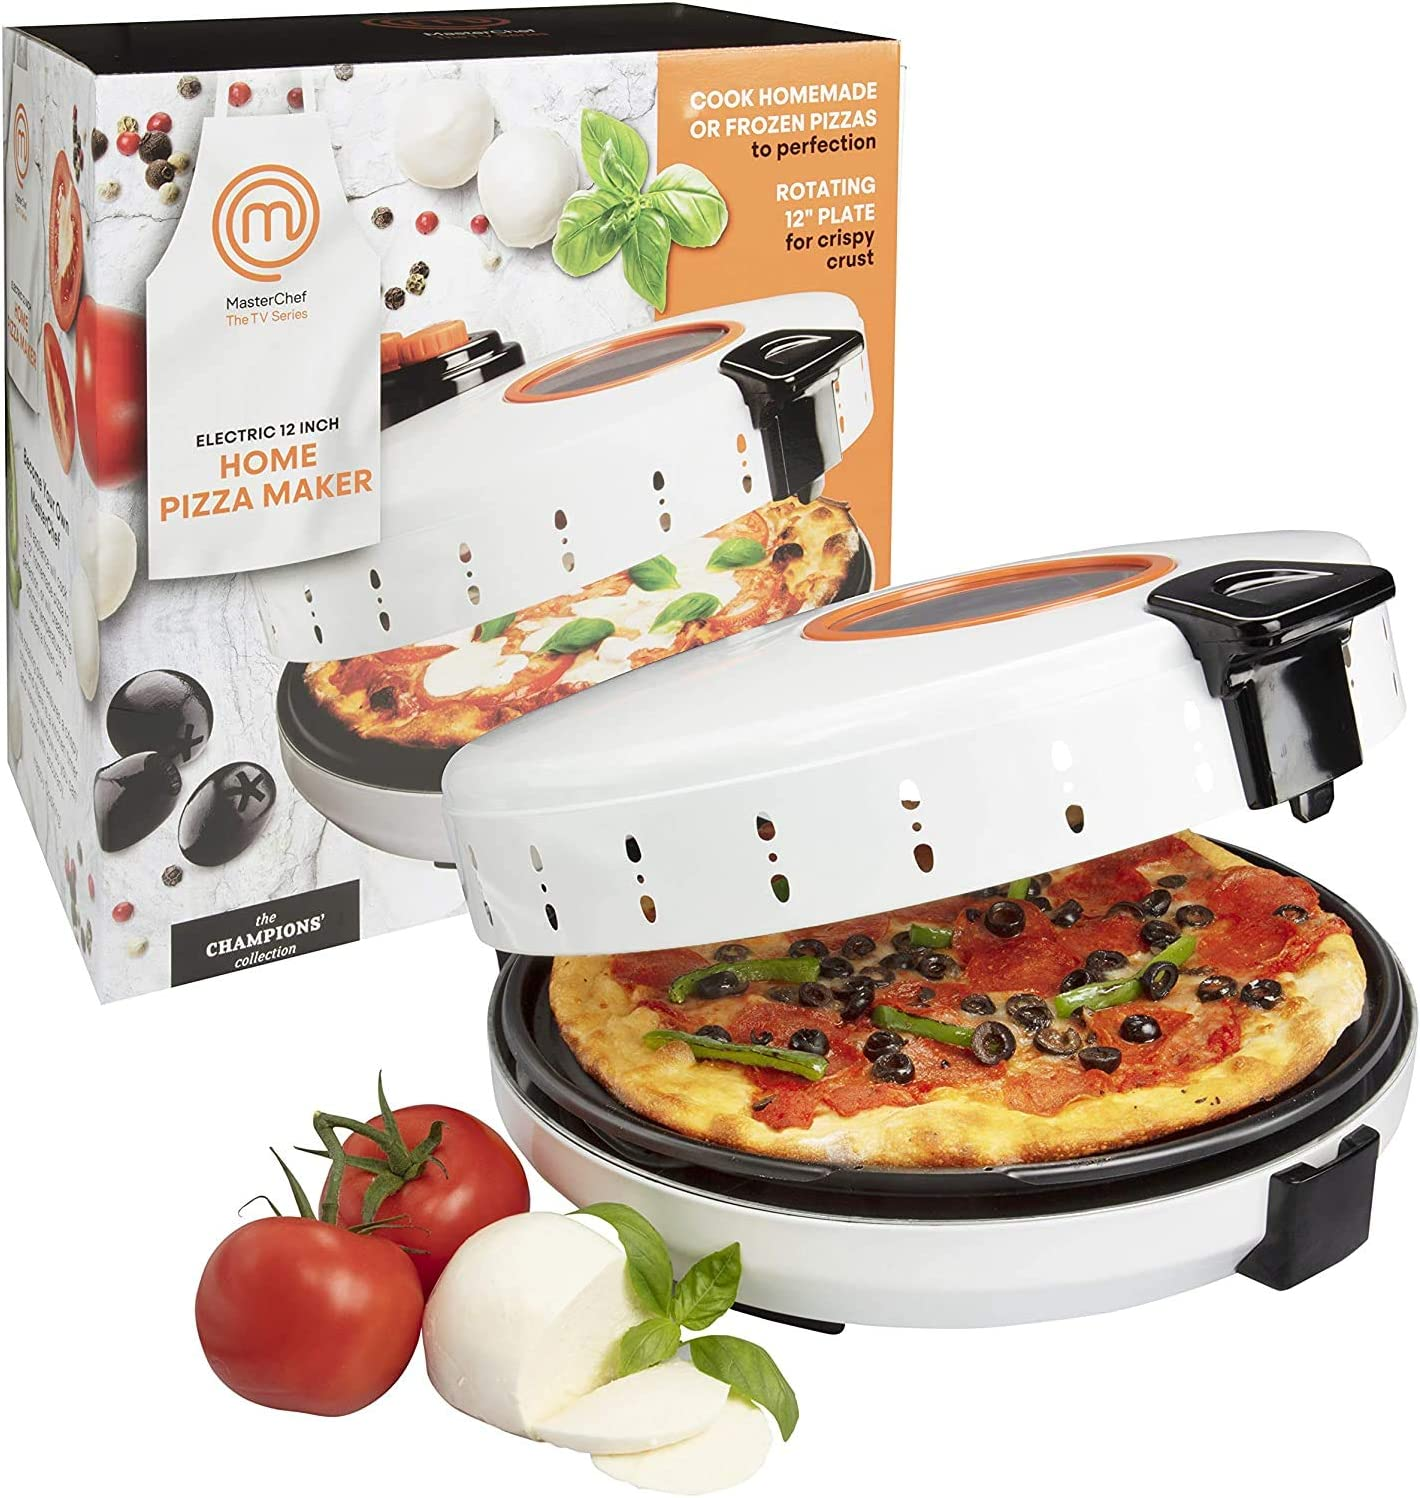 MasterChef Pizza Maker- Electric Rotating 12 Inch Non-stick Calzone Cooker - Countertop Pizza Pie and Quesadilla Oven w Adjustable Temperature Control (Renewed)